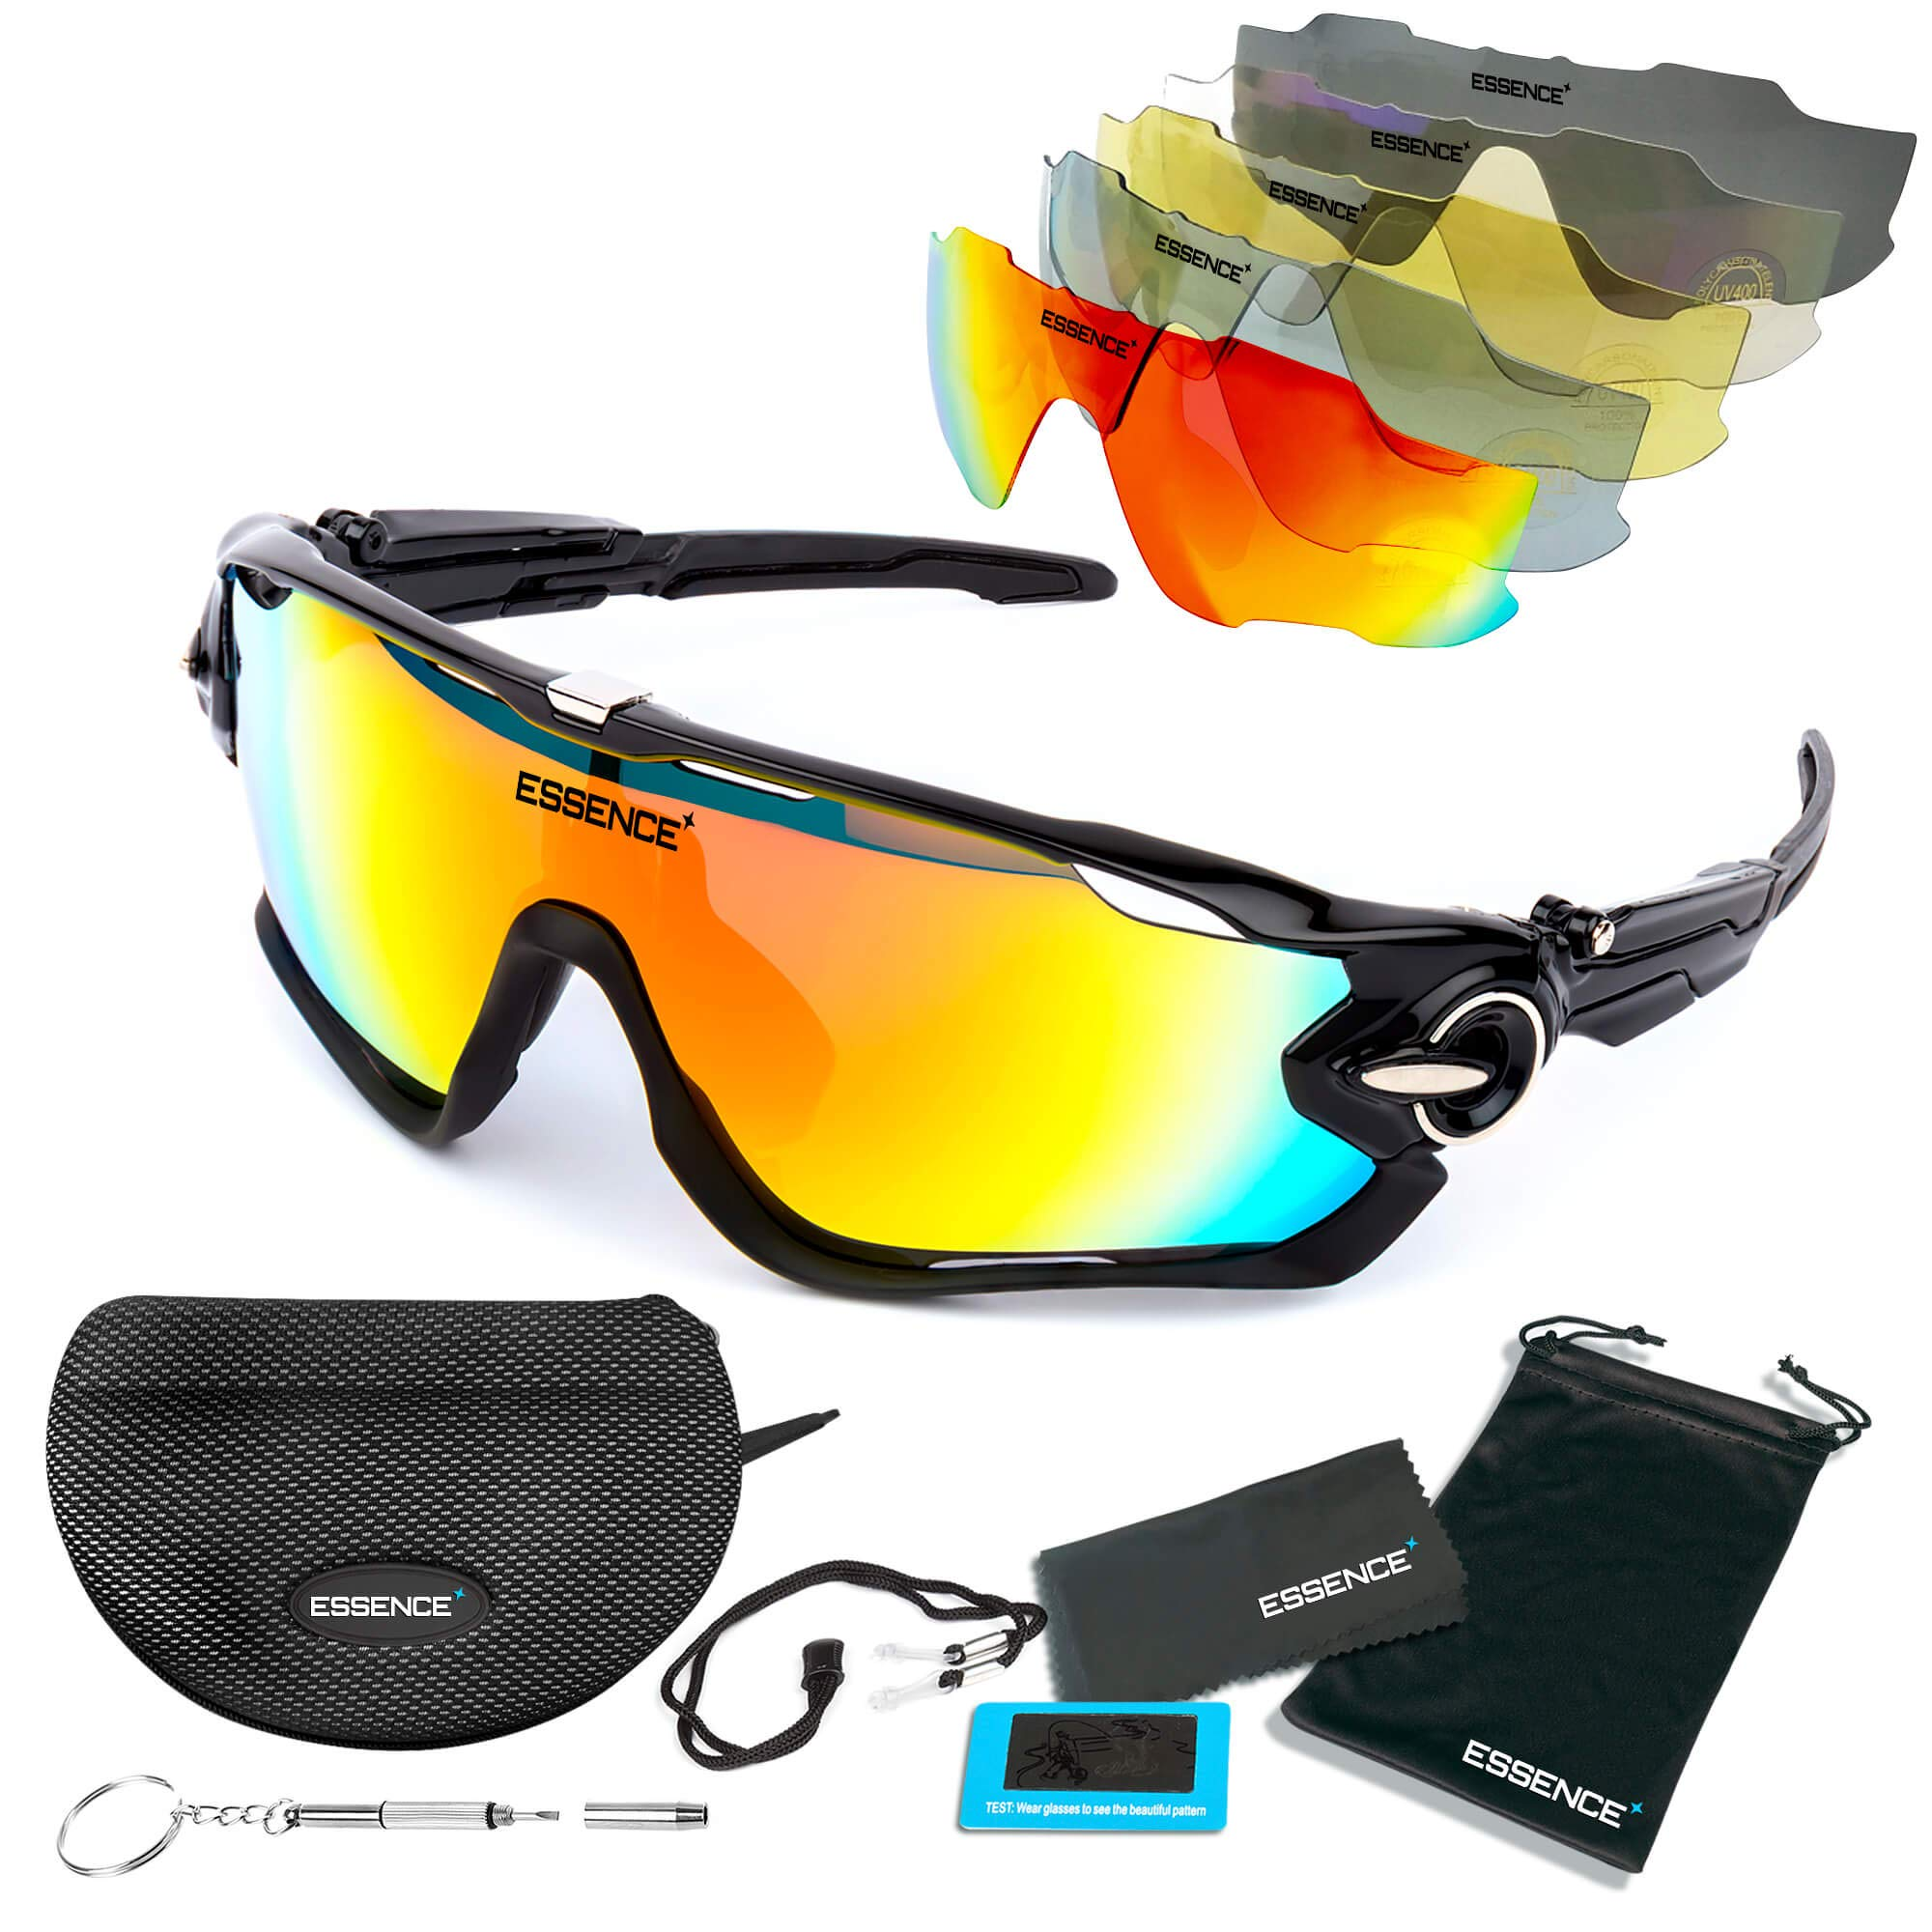 08cafc3f01 essence  Polarised Sports Sunglasses - Mens   Womens Cycling Glasses +5  Interchangeable lenses with